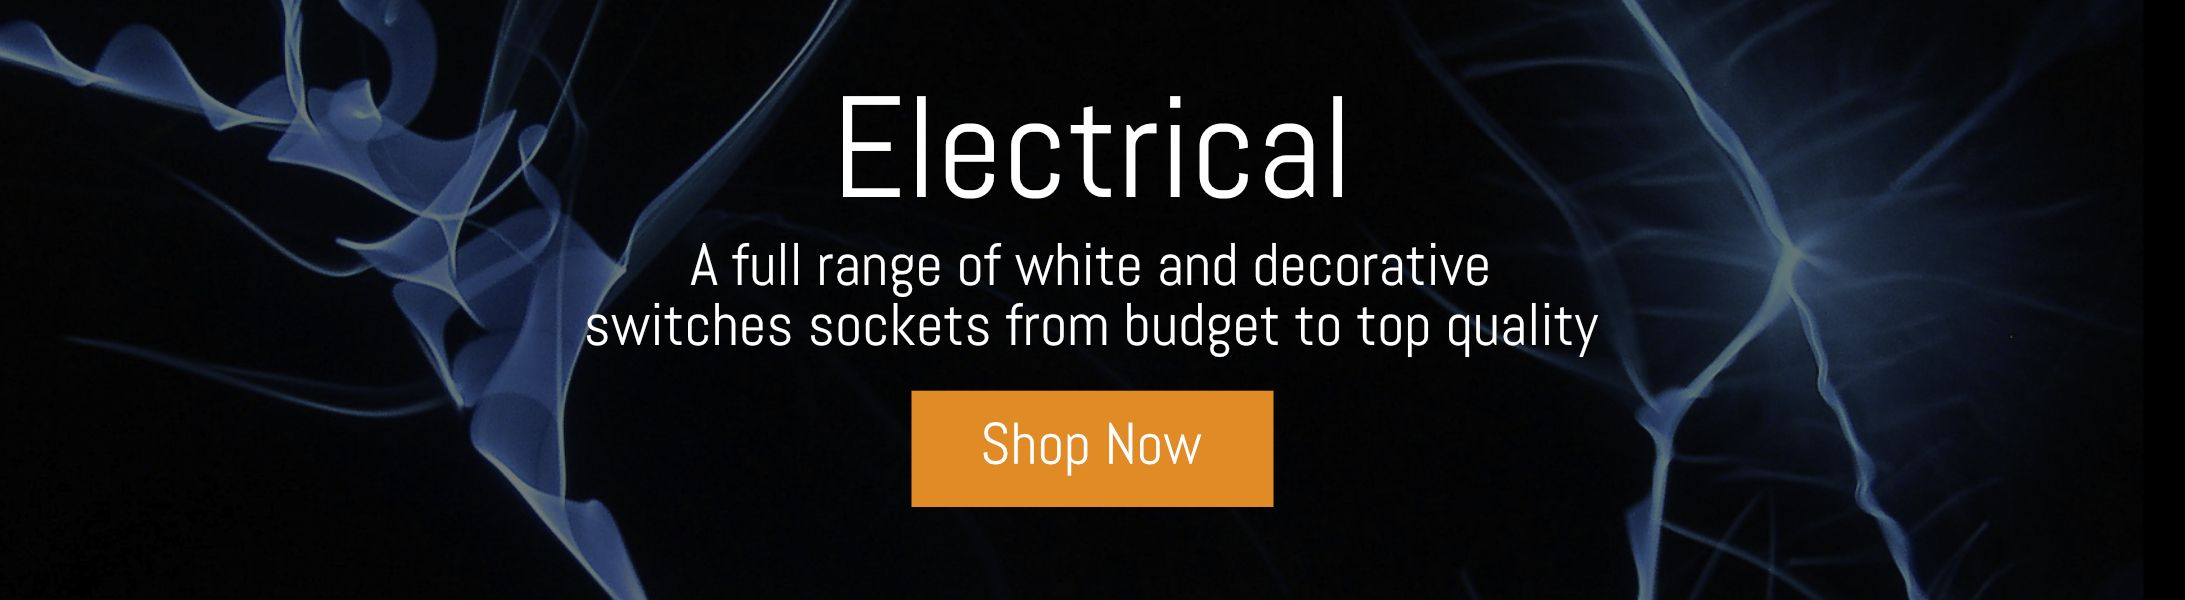 Electrical - Shop Now